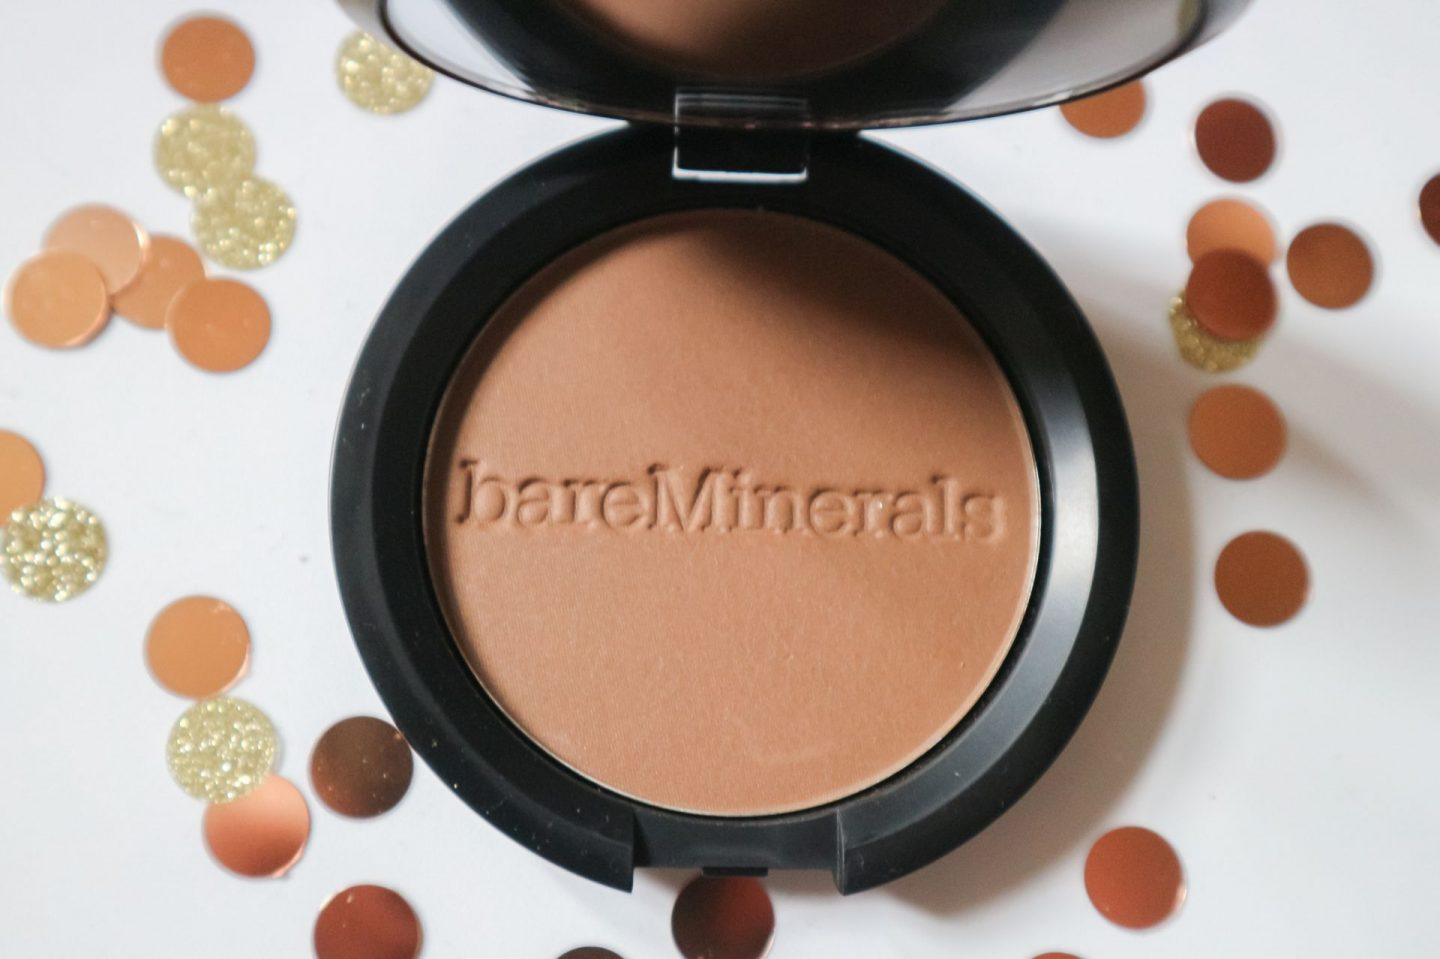 Bare Minerals Endless Summer Bronzer in Faux Tan